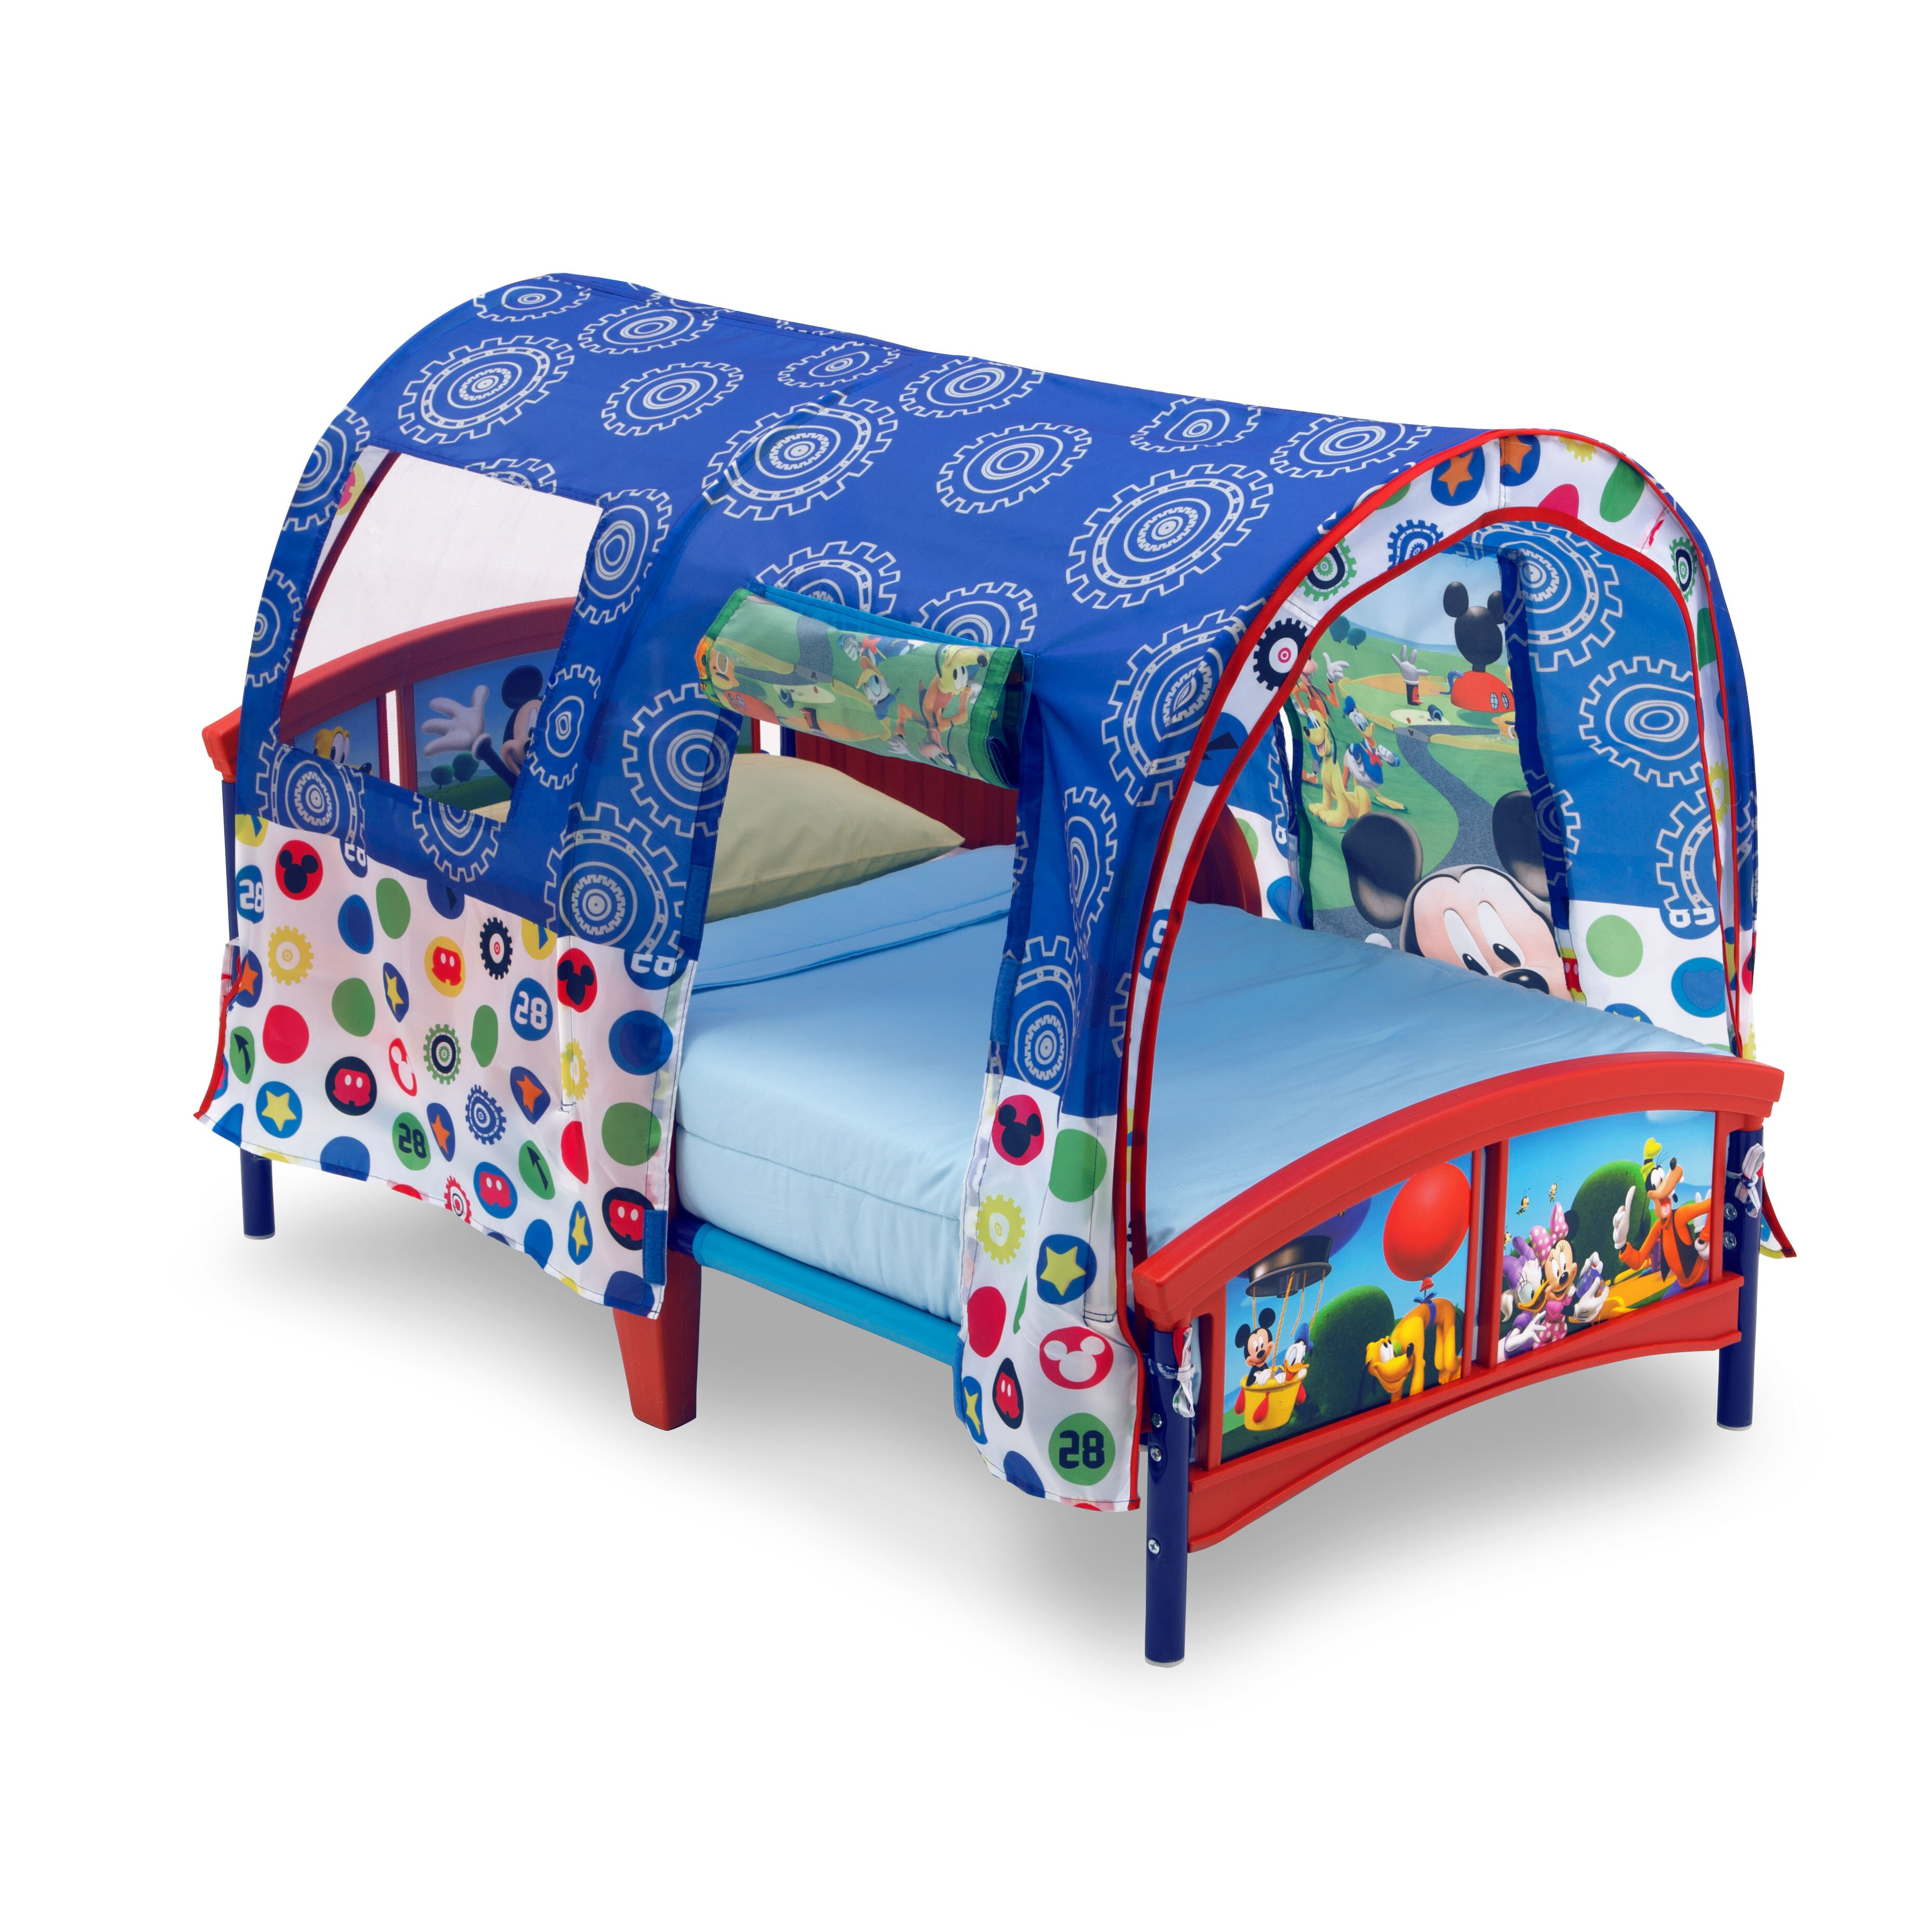 Toddler Bed Tents 28 Images Toddler Canopy Bed Handcrafted Pallet Blue Painted Canopy